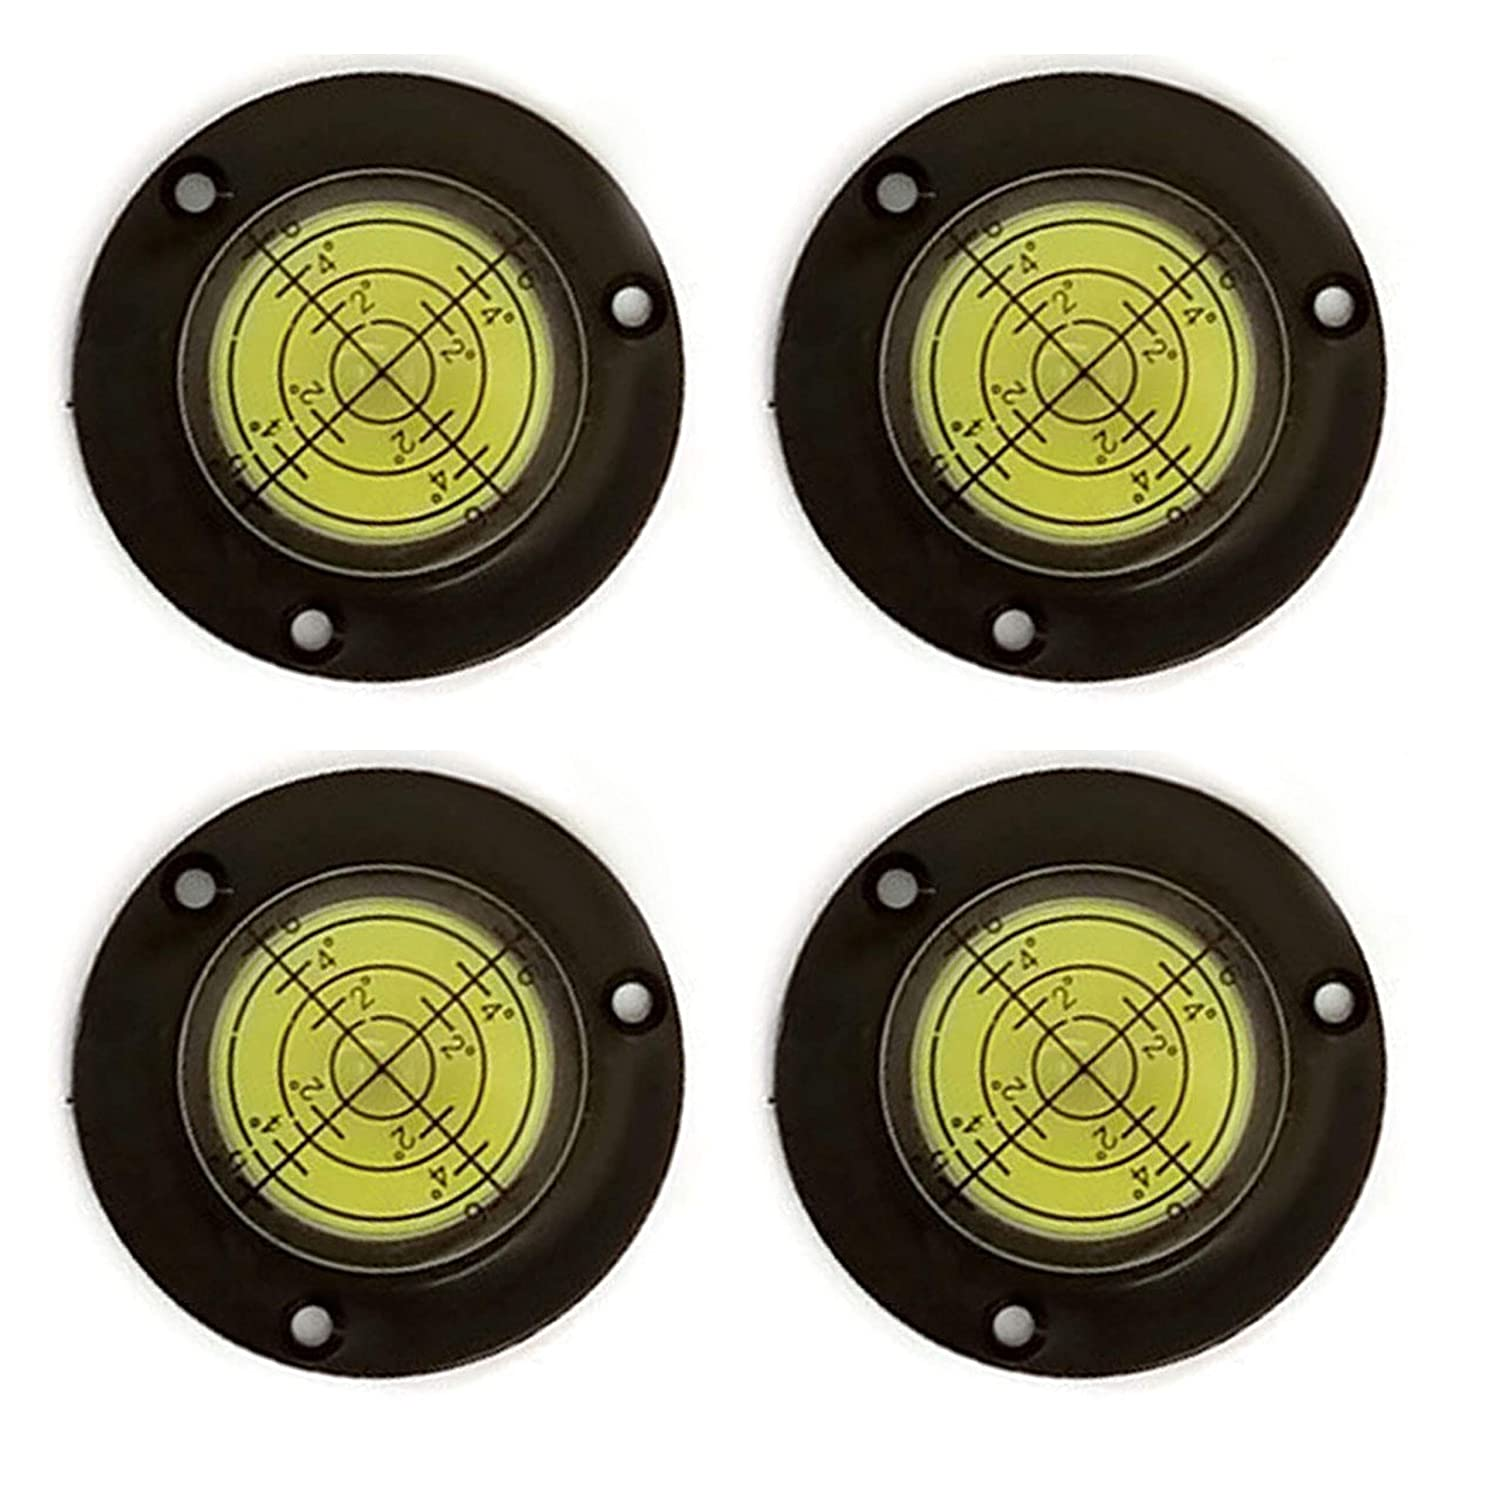 Four Pack Of Green 50x17mm High-Accuracy Bulls Eye Level by GFNT